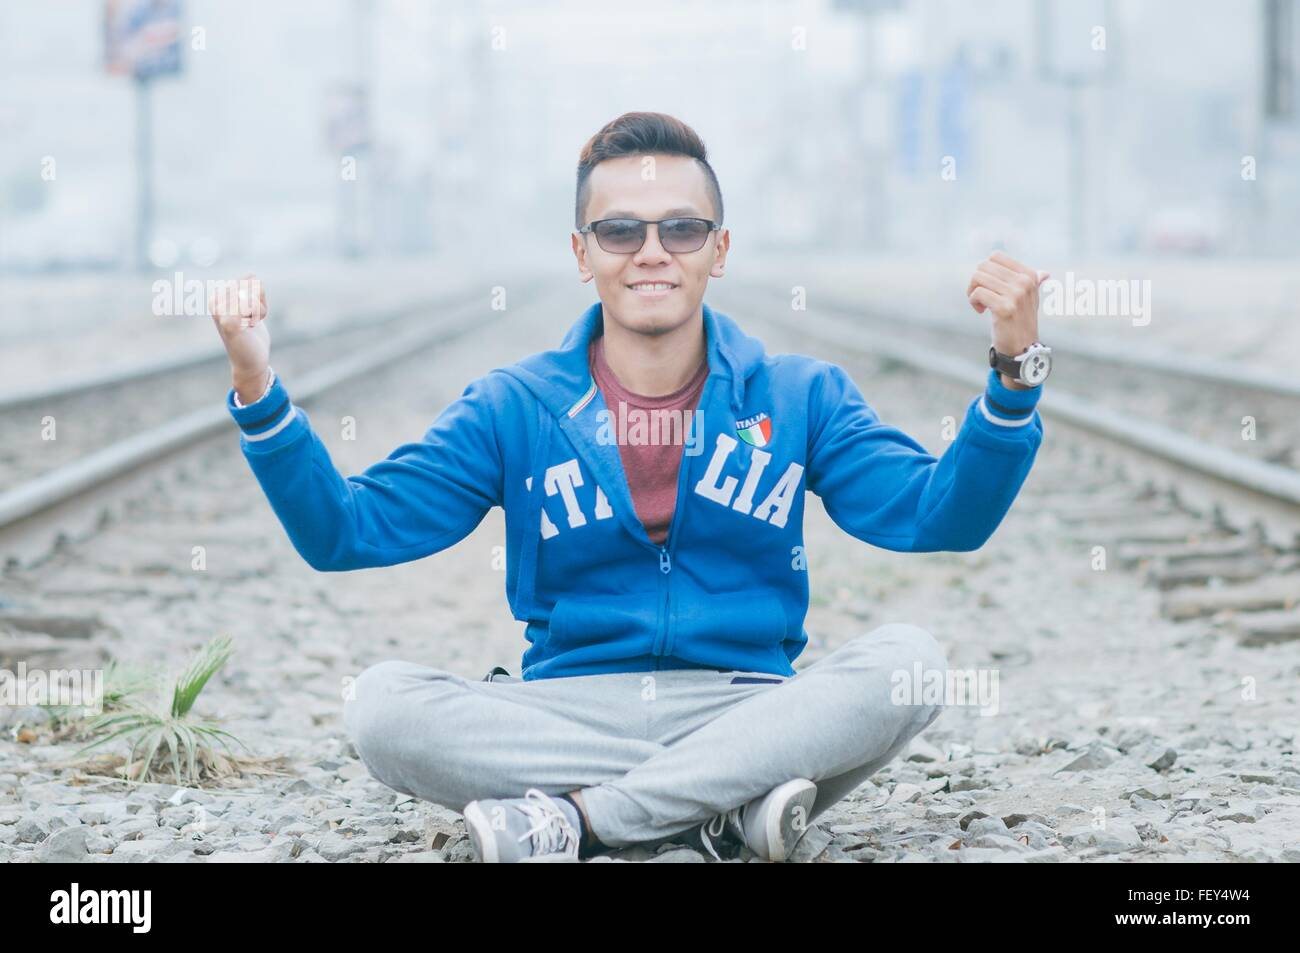 Portrait Of Smiling Man Gesturing While Sitting Amidst Railroad Tracks On Field - Stock Image